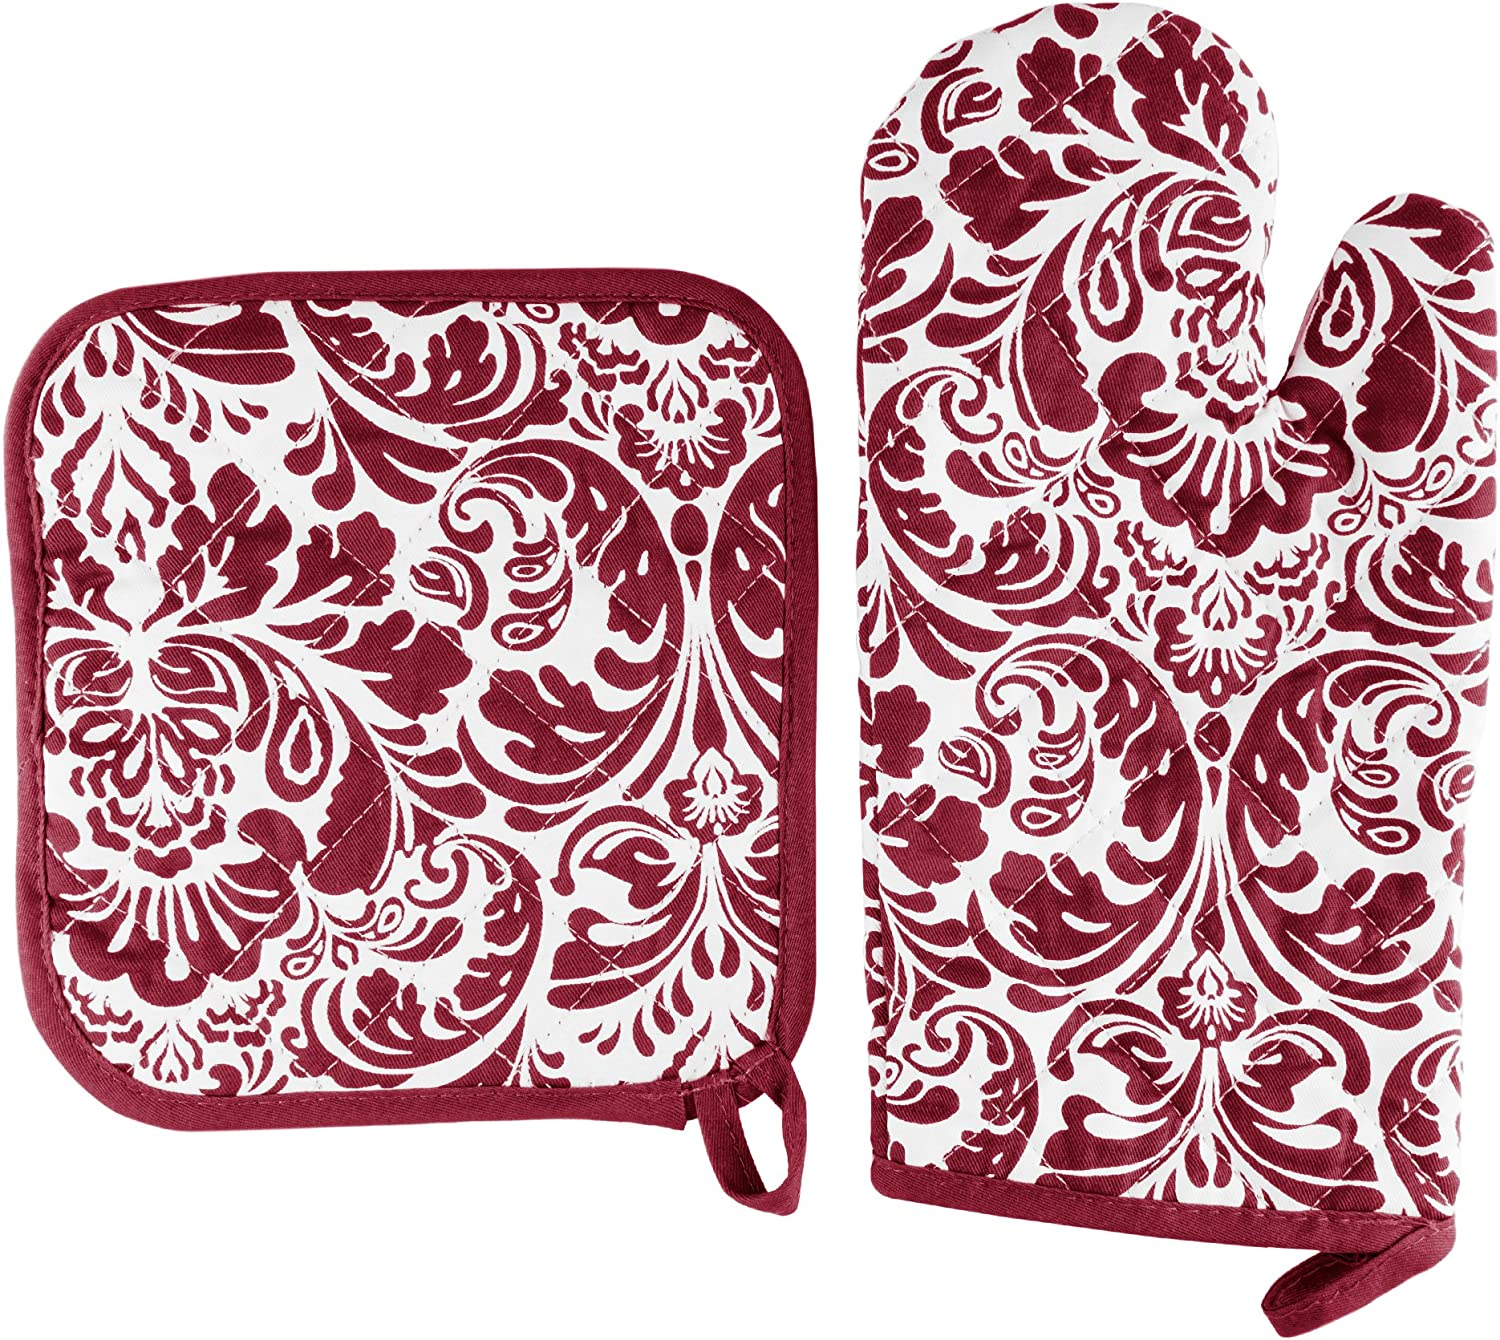 Oven Mitt And Pot Holder Set, Quilted And Flame And Heat Resistant By Lavish Home (Burgundy)